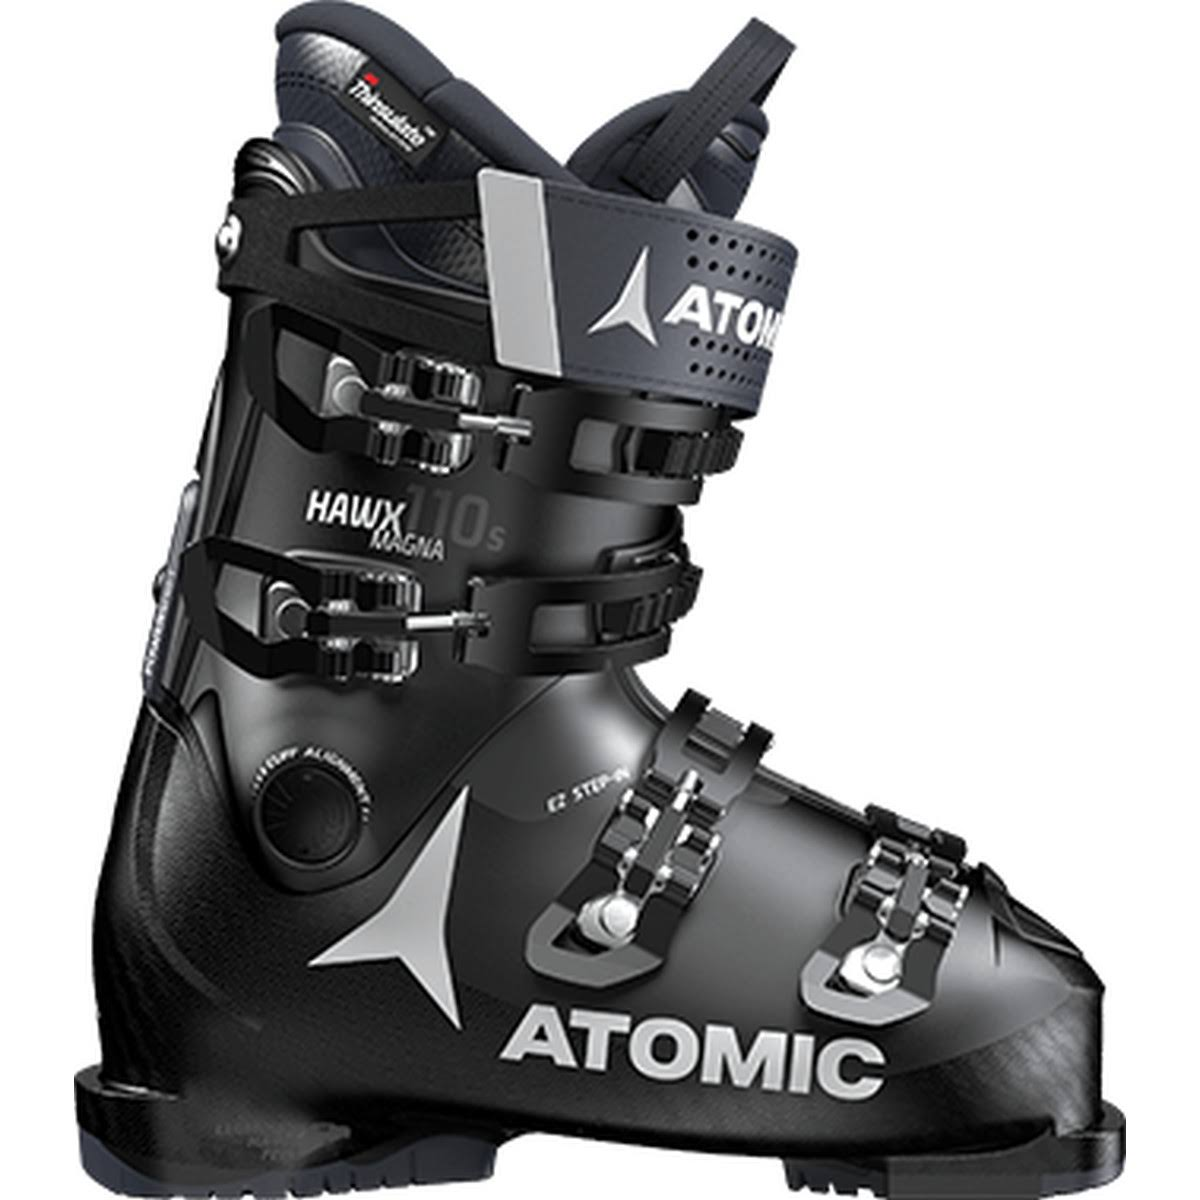 Atomic Men's Hawx Magna 110 S Ski Boots - Black